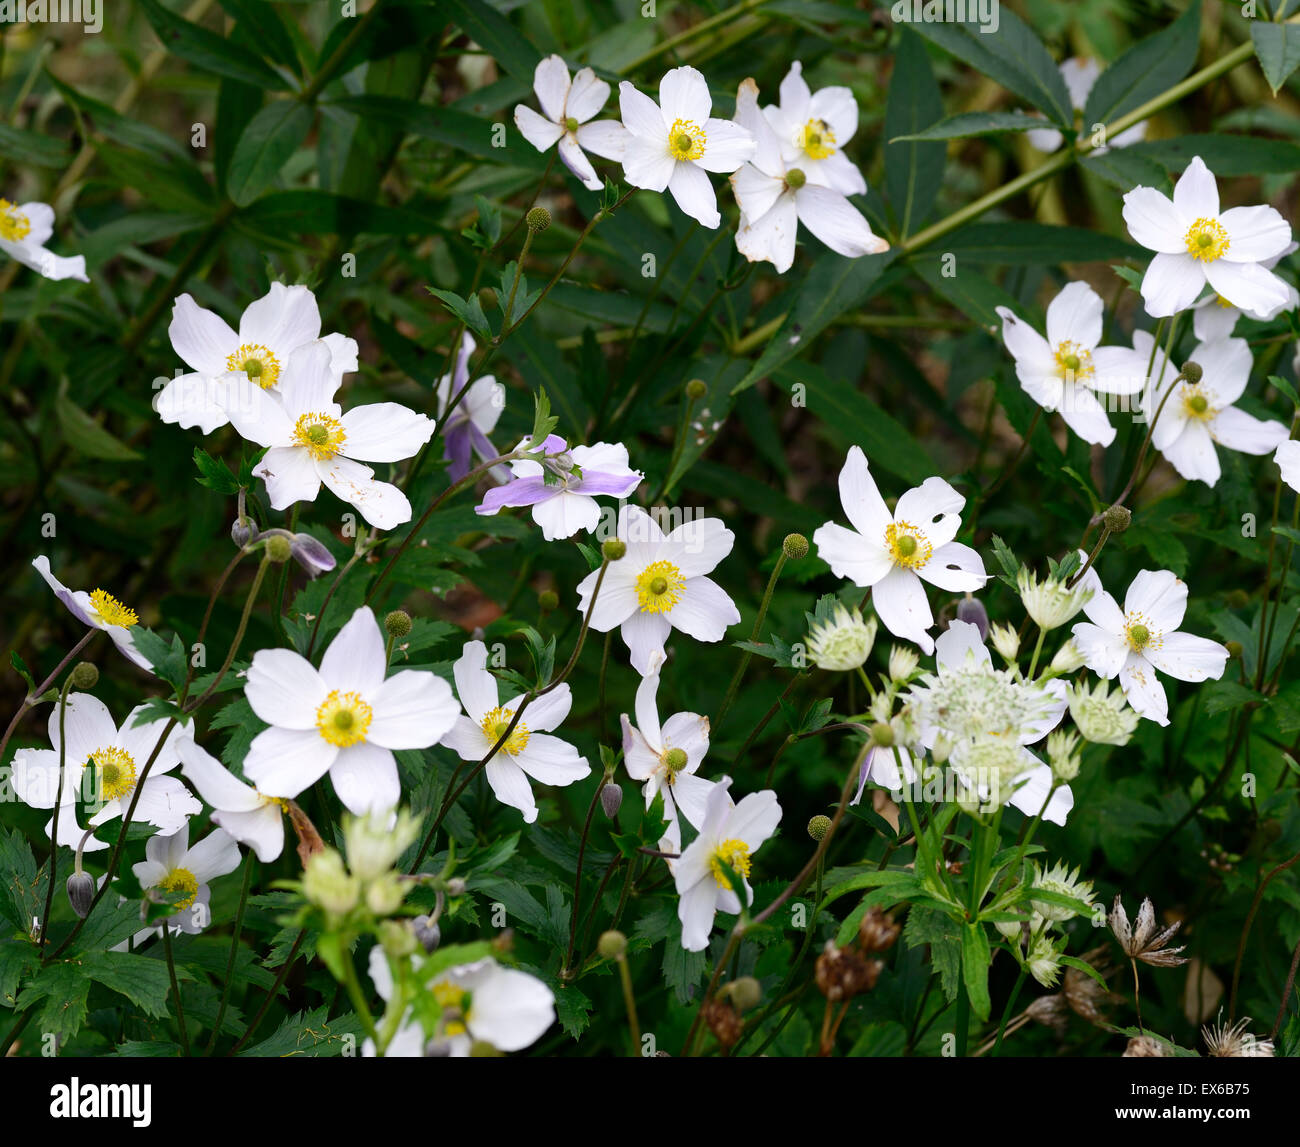 White perennial flowers savingourboysfo anemone wild swan white flower blue purple reverse herbaceous natural flower perennial dhlflorist Image collections